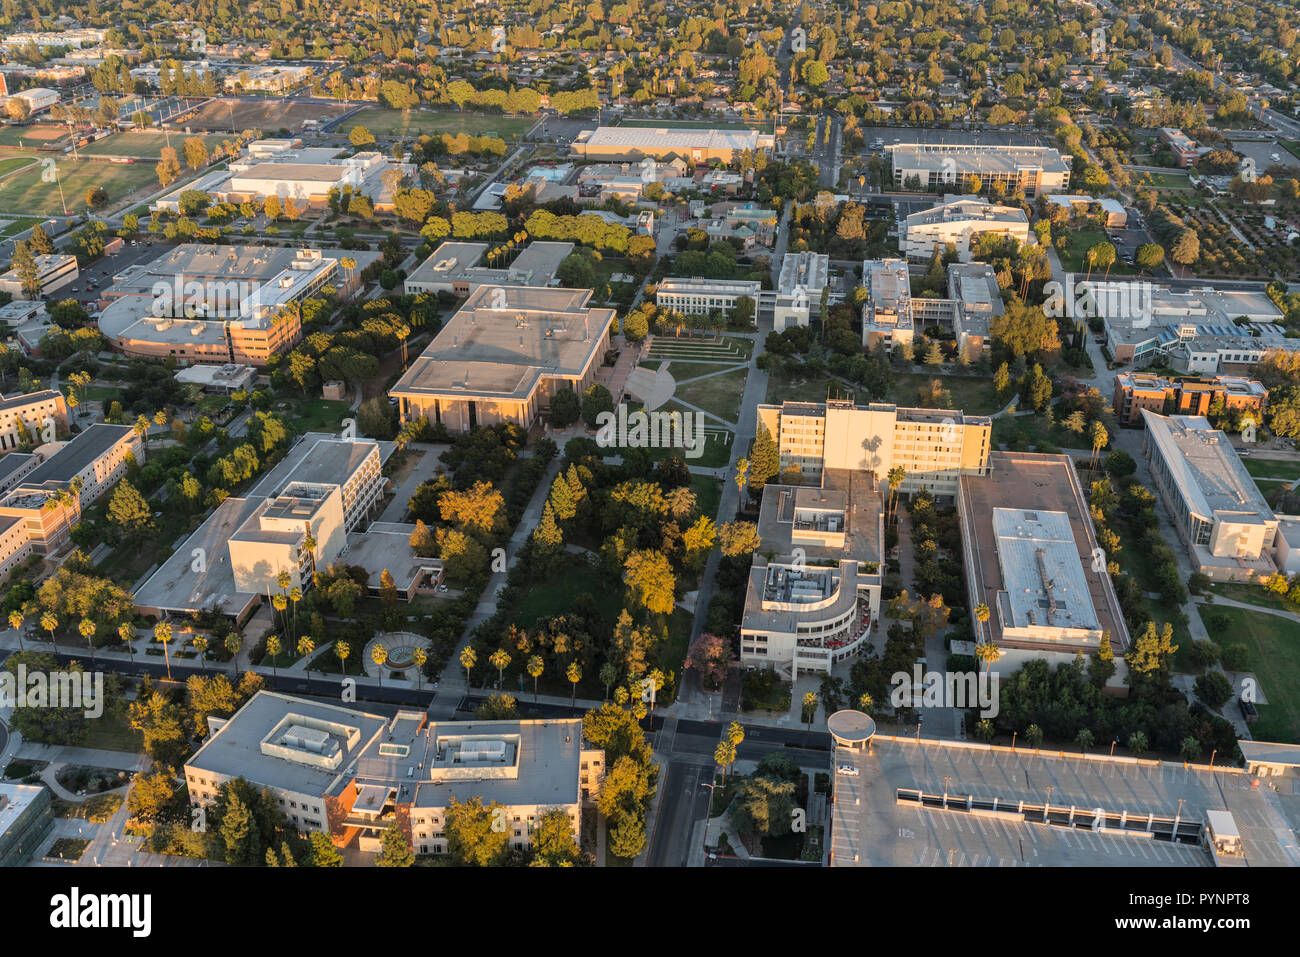 Los Angeles, California, USA - October 21, 2018:  Aerial sunset view of California State University Northridge central campus buildings in the San Fer - Stock Image